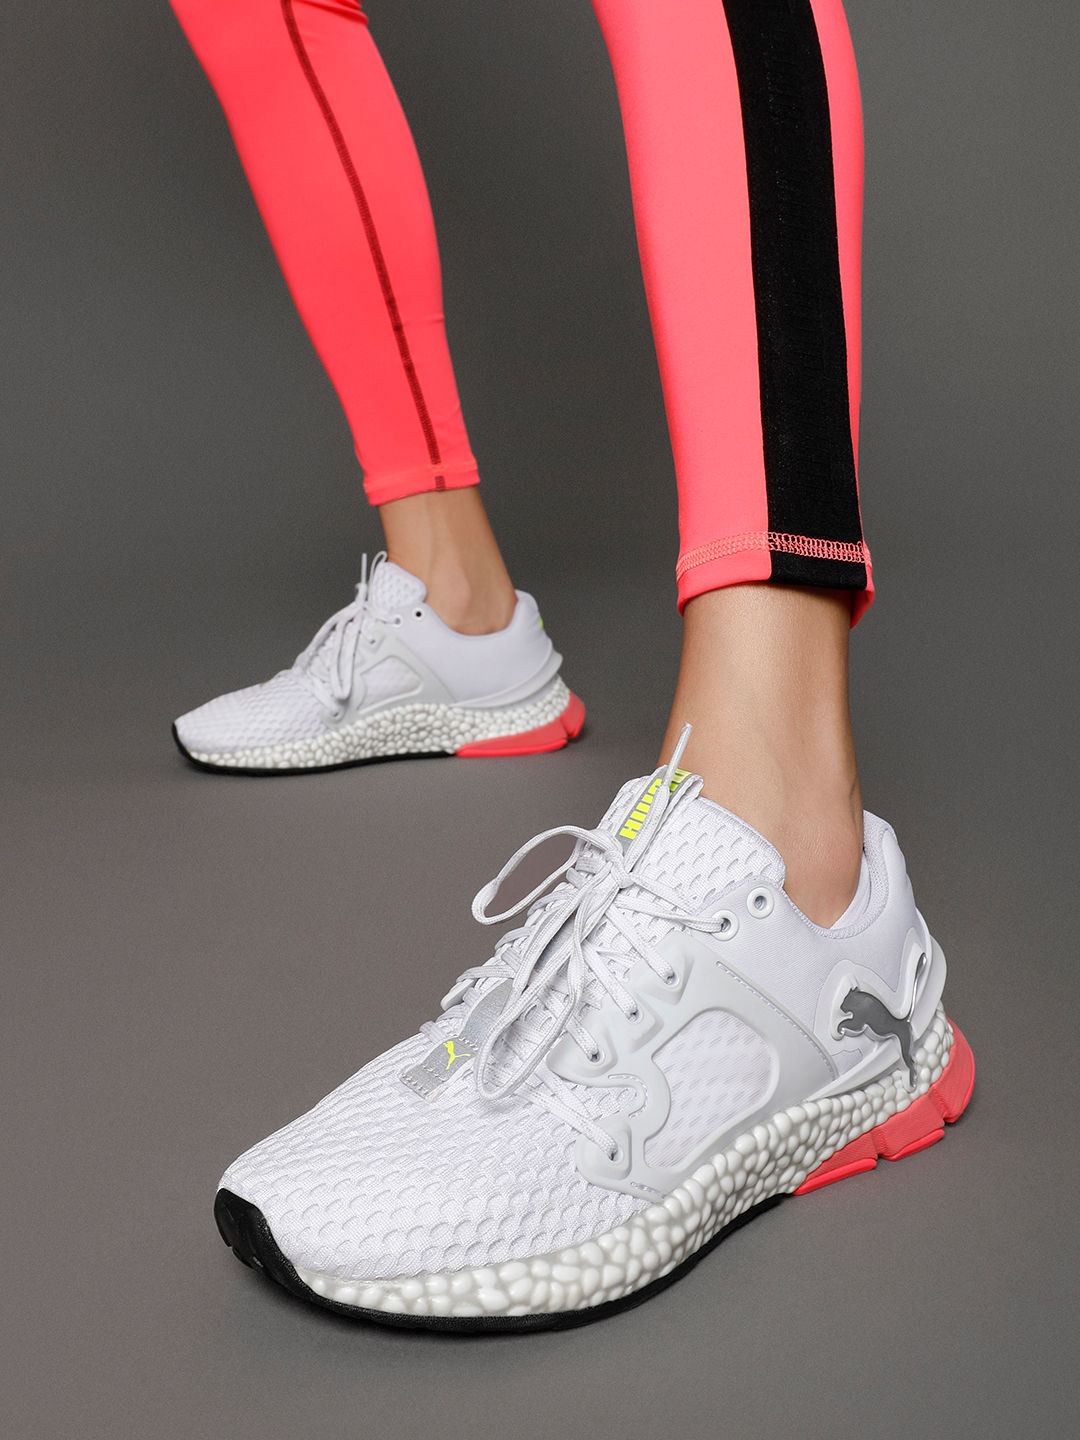 Puma HYBRID Sky Women's Running Shoes